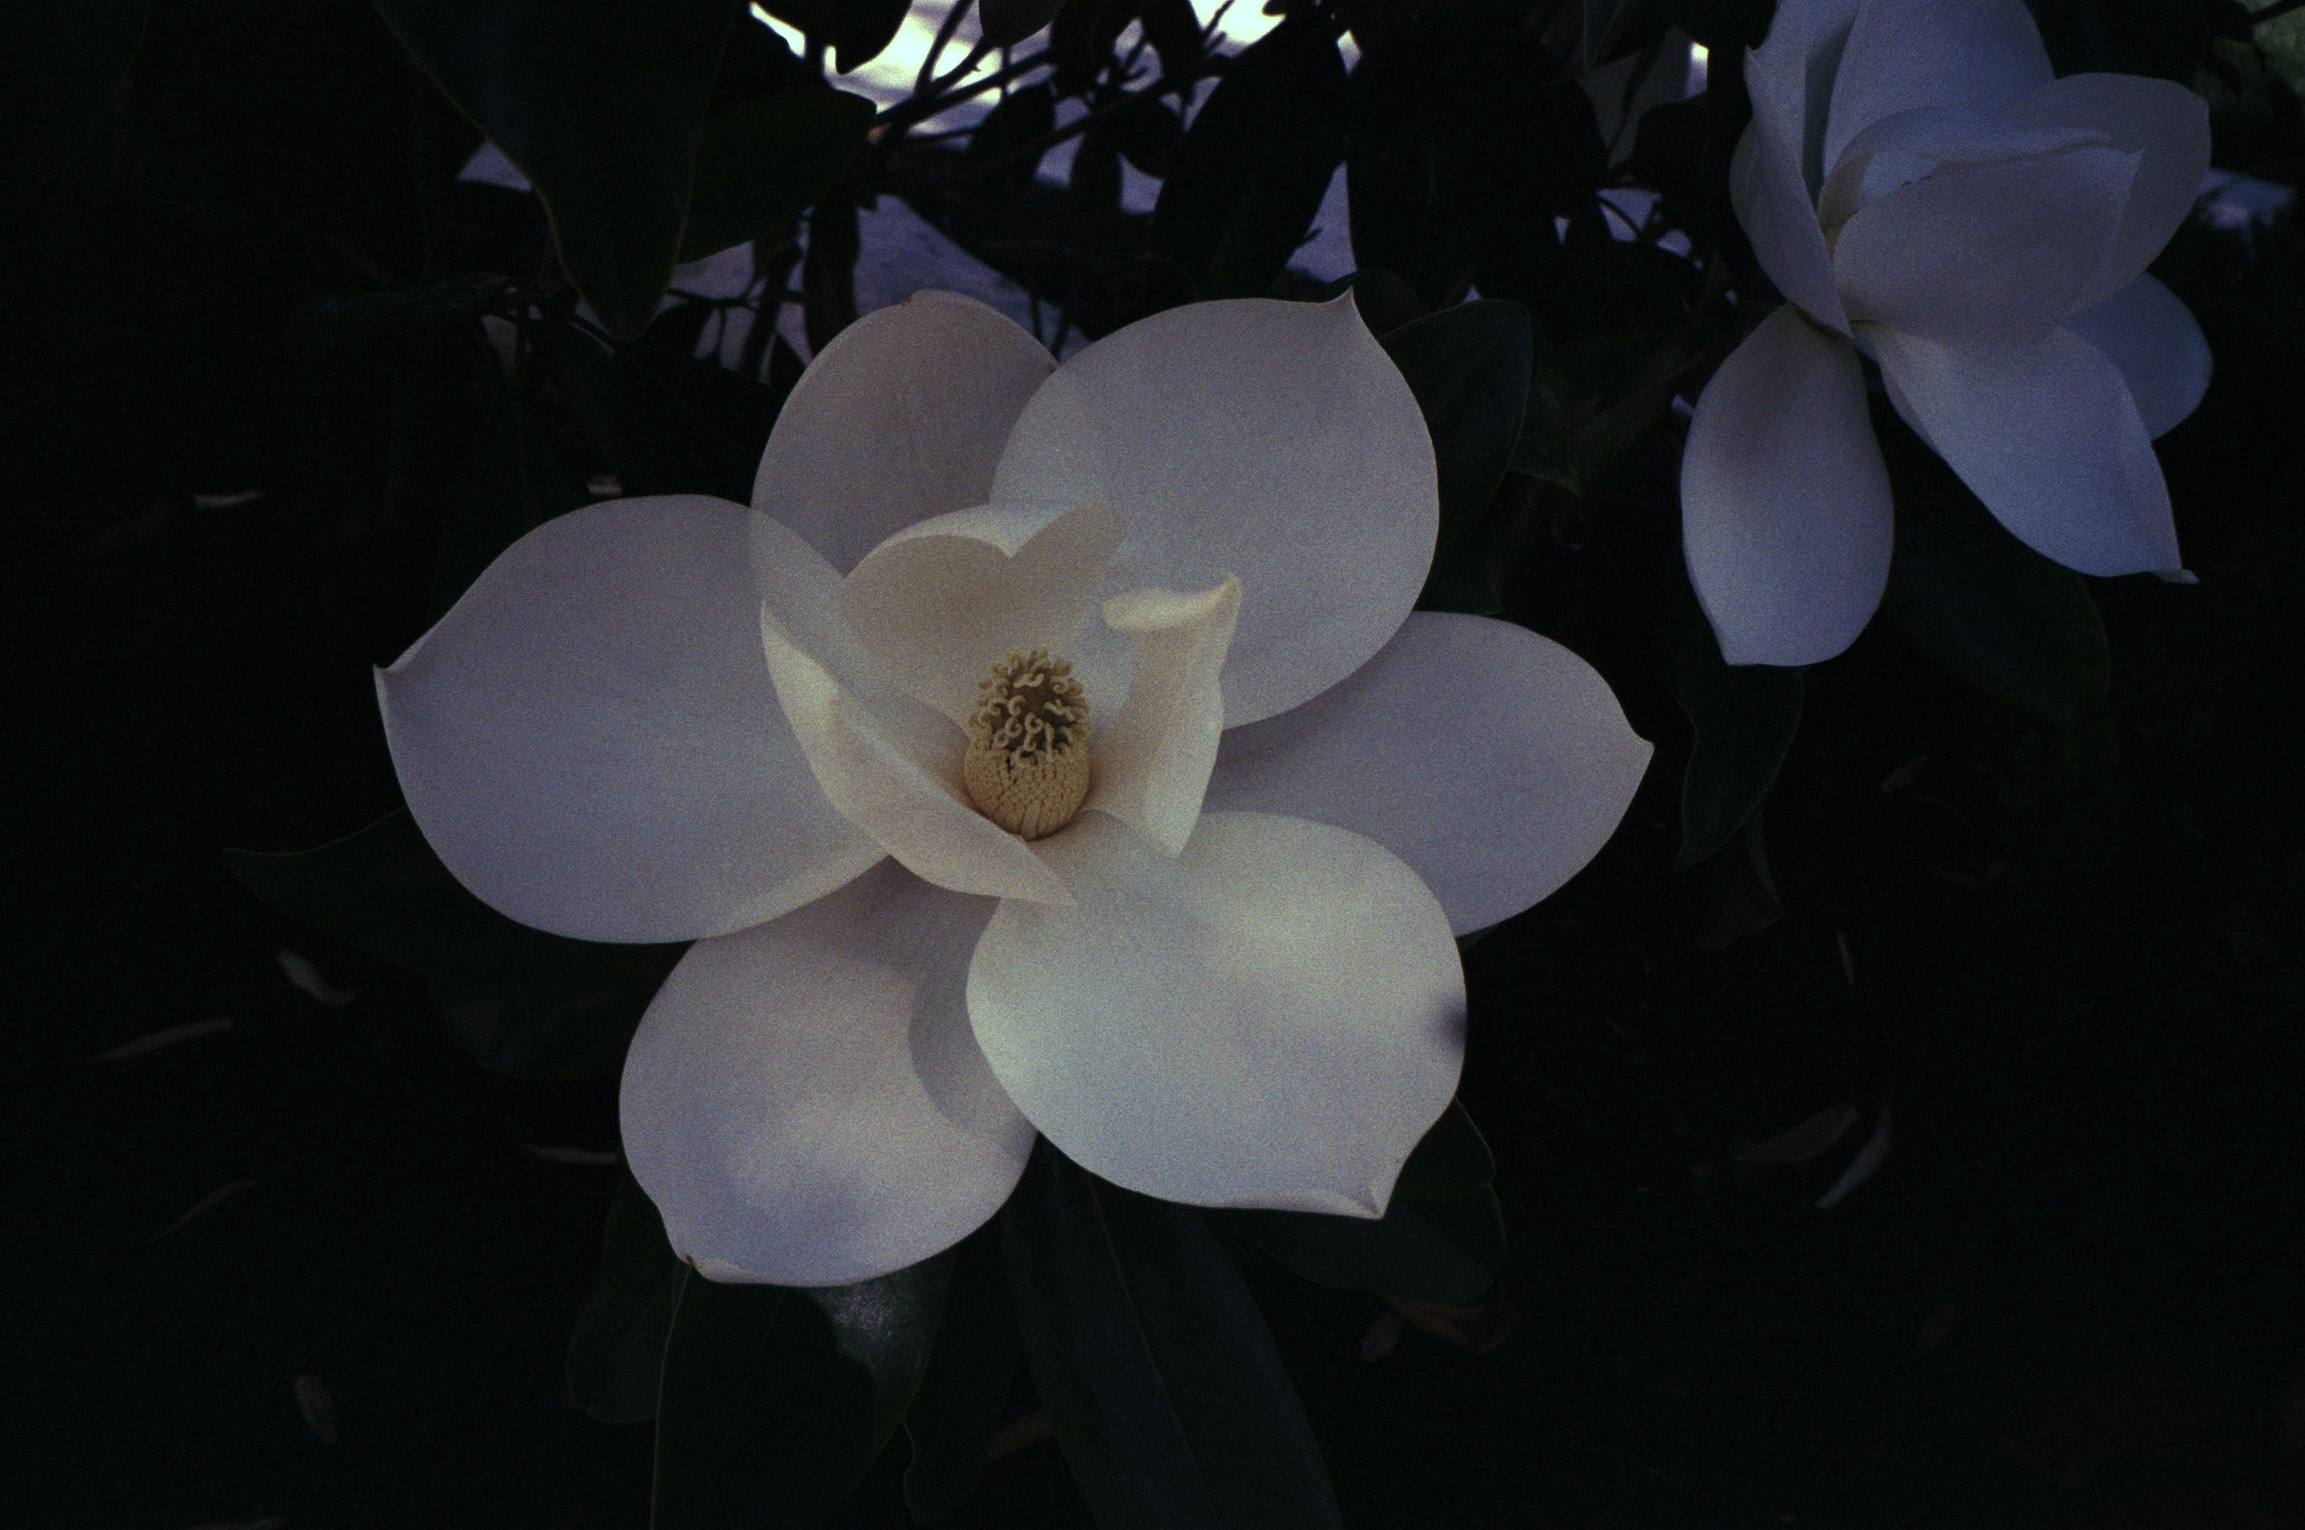 cody-swann-photo-329-magnolia